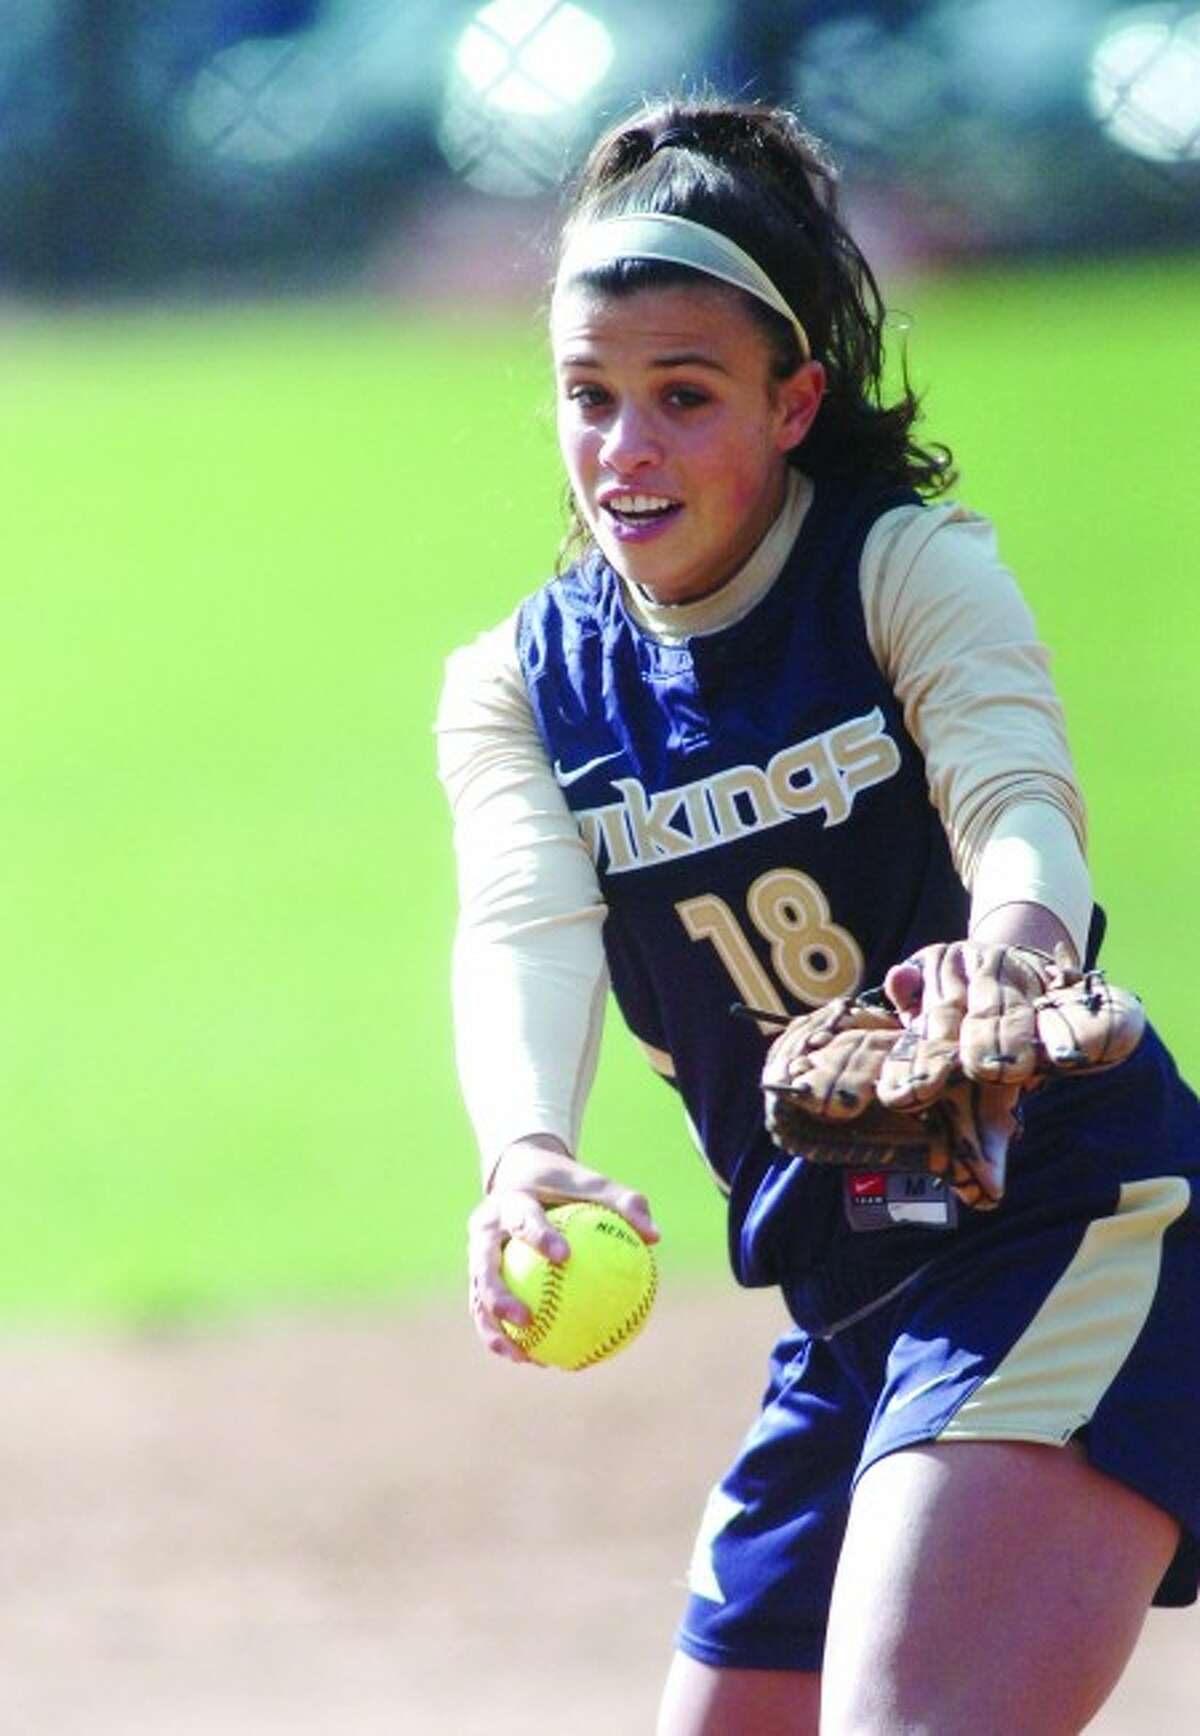 King softball pitcher Kaitlyn Della Jacono pitched a one-hitter with 11 strikeouts in the Vikings'' 6-2 win over Greenwich Academy on Monday, April 19. Times photo/Matthew Vinci